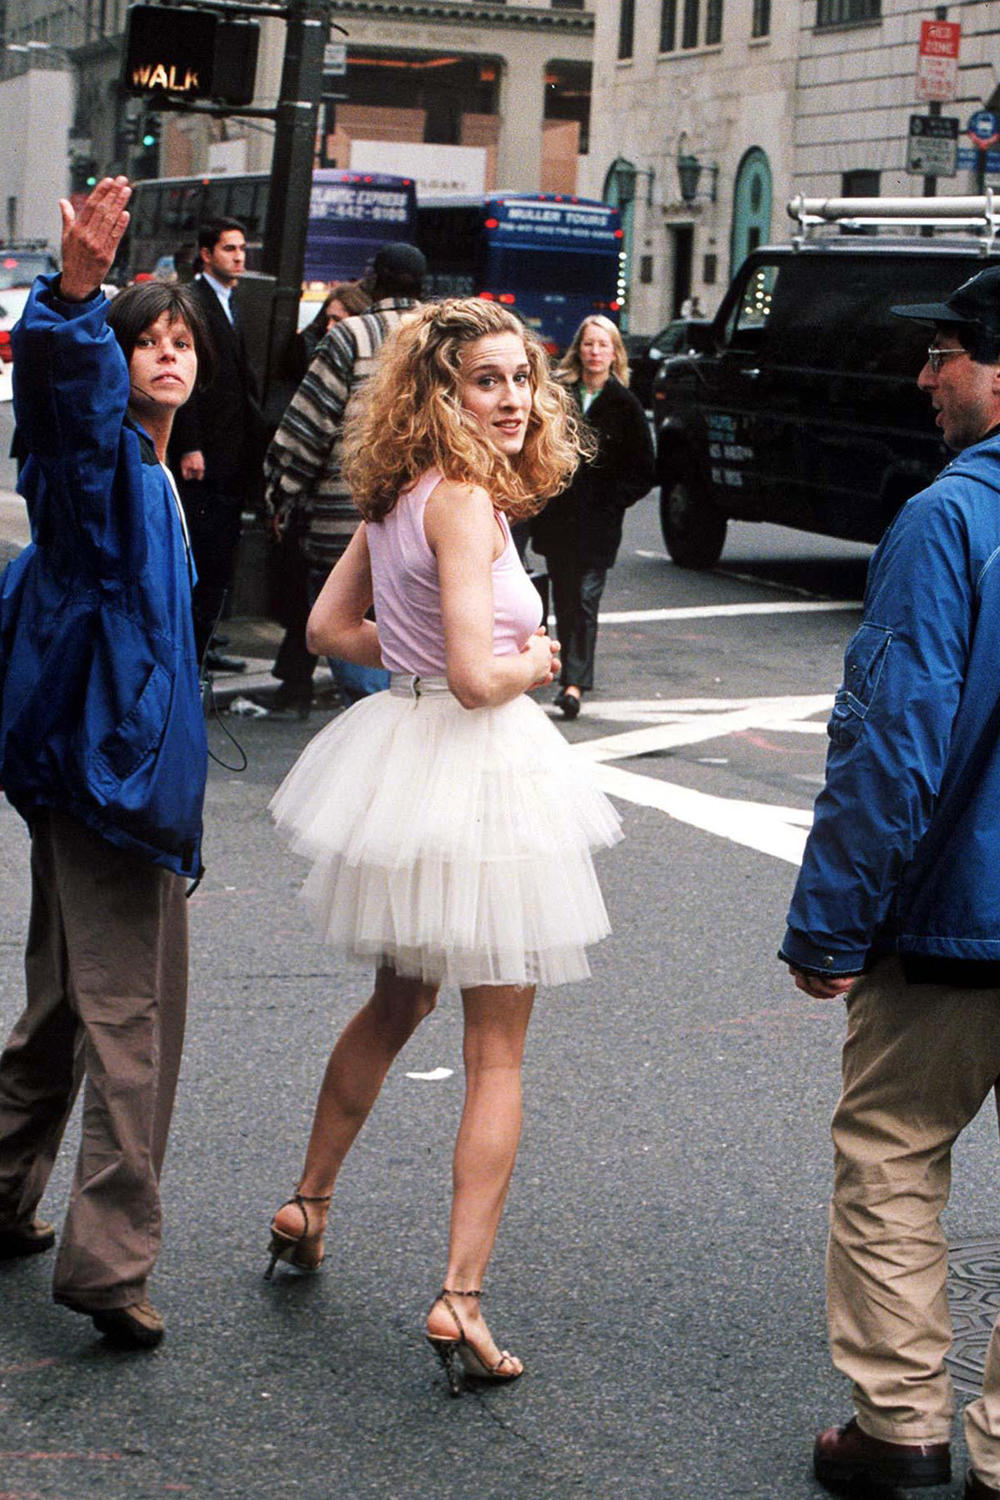 Sex and the City Anniversary SATC Iconic Outfits Carrie Bradshaw Fashion Chanel Burberry Louis Vuitton Sarah Jessica Parker